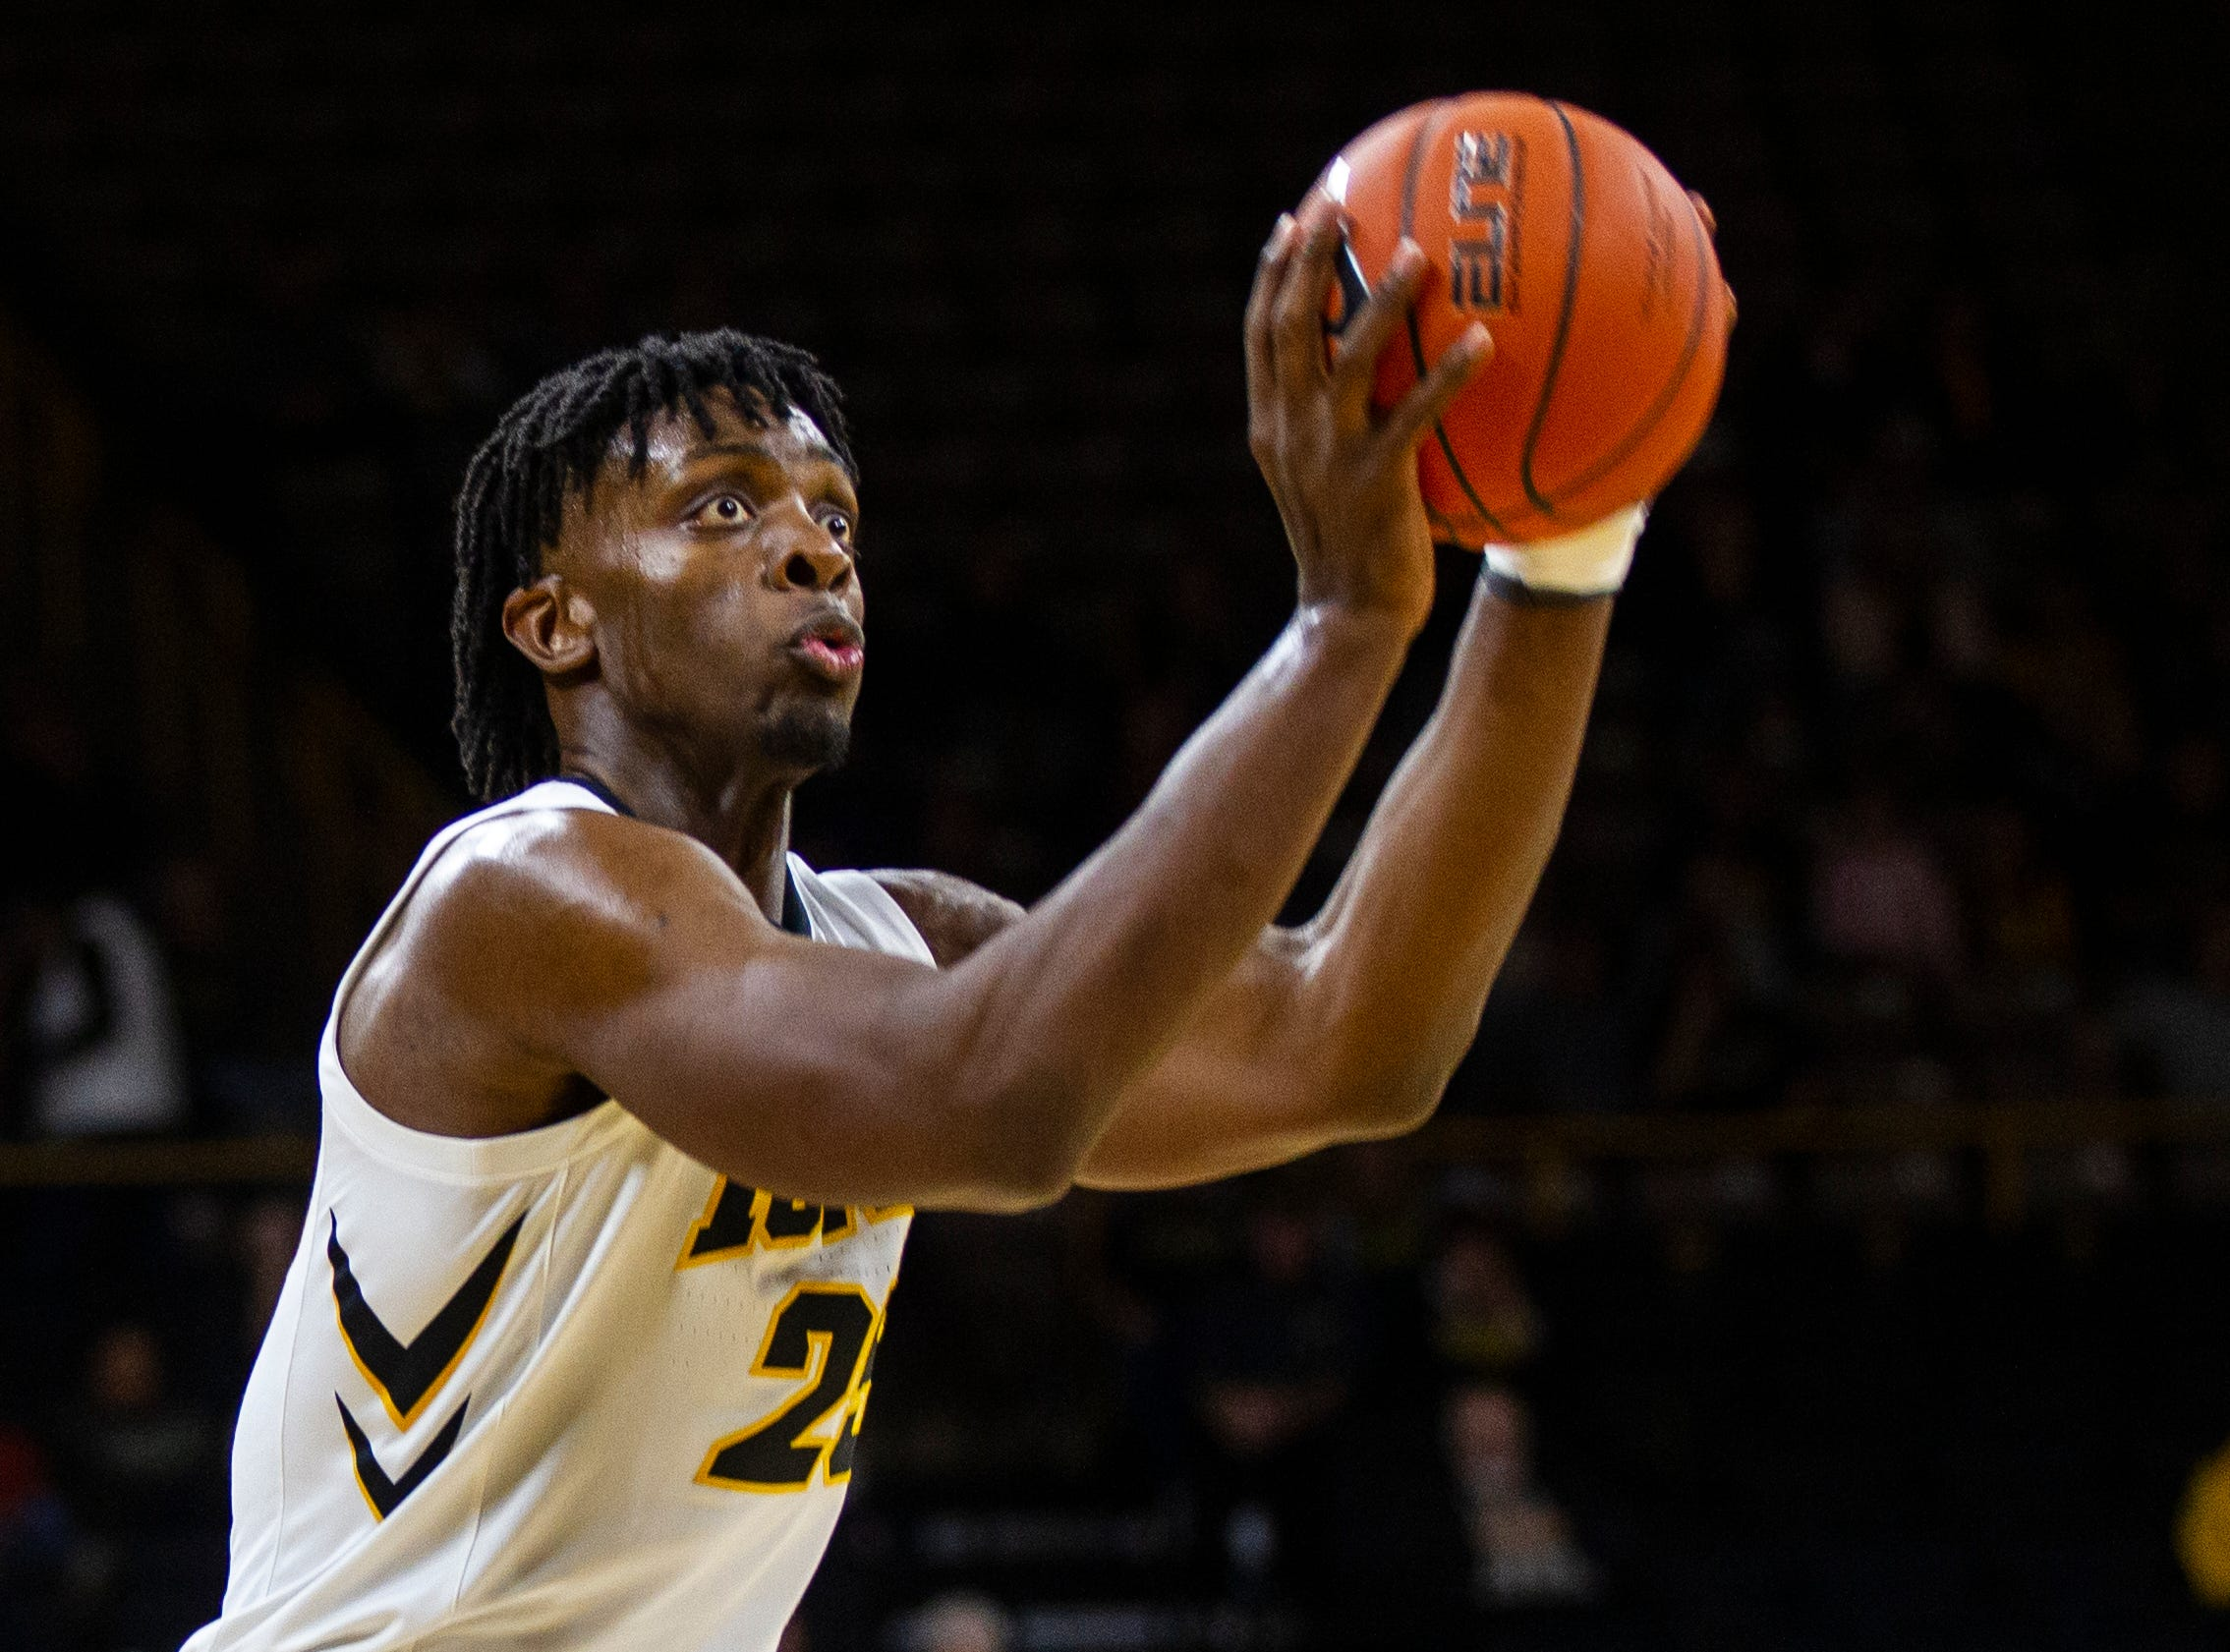 Iowa forward Tyler Cook (25) shoots during a men's basketball exhibition game on Sunday, Nov. 4, 2018, at Carver-Hawkeye Arena in Iowa City.